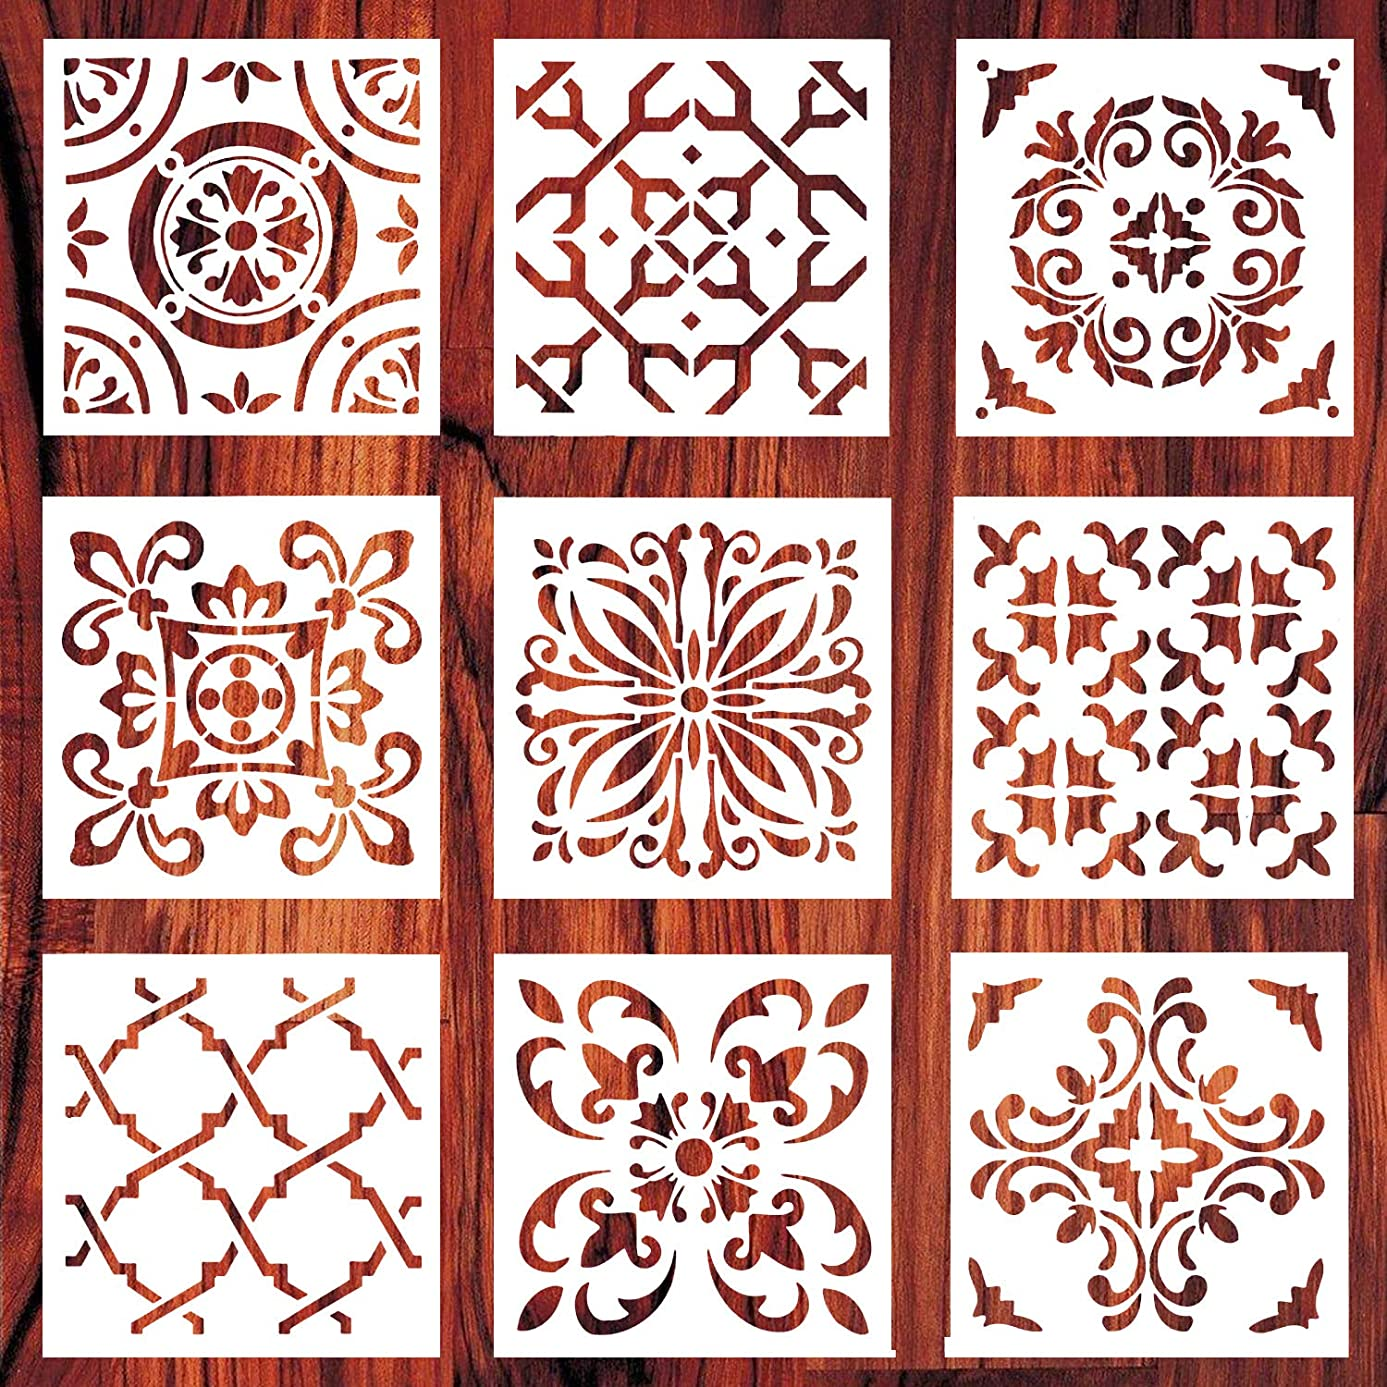 AxPower Mandala Painting Stencils Reusable Stencil Laser Cut Painting Template Floor Wall Tile Fabric Furniture Stencils, Set of 9 (6x6 inch)